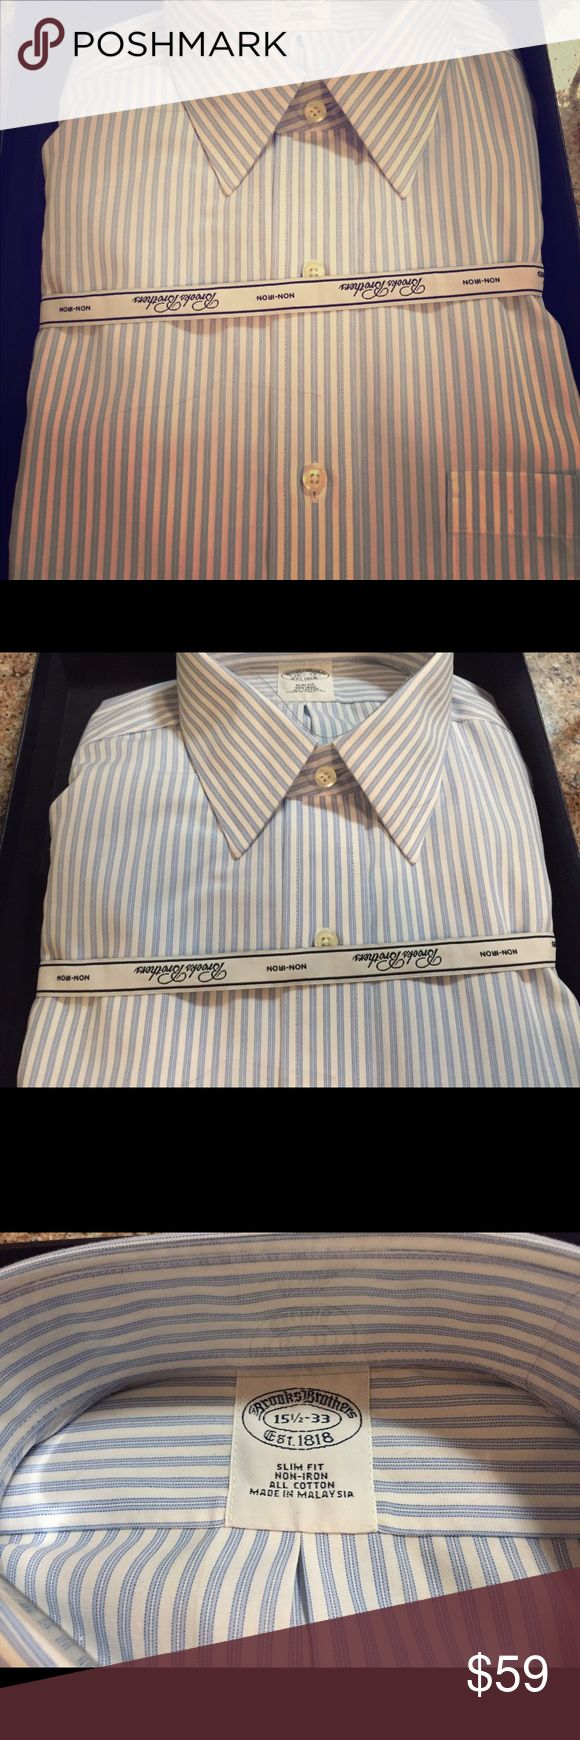 Brooks brothers button down Men's shirt. Brand new never worn! 15.5-33. Brooks Brothers Tops Button Down Shirts